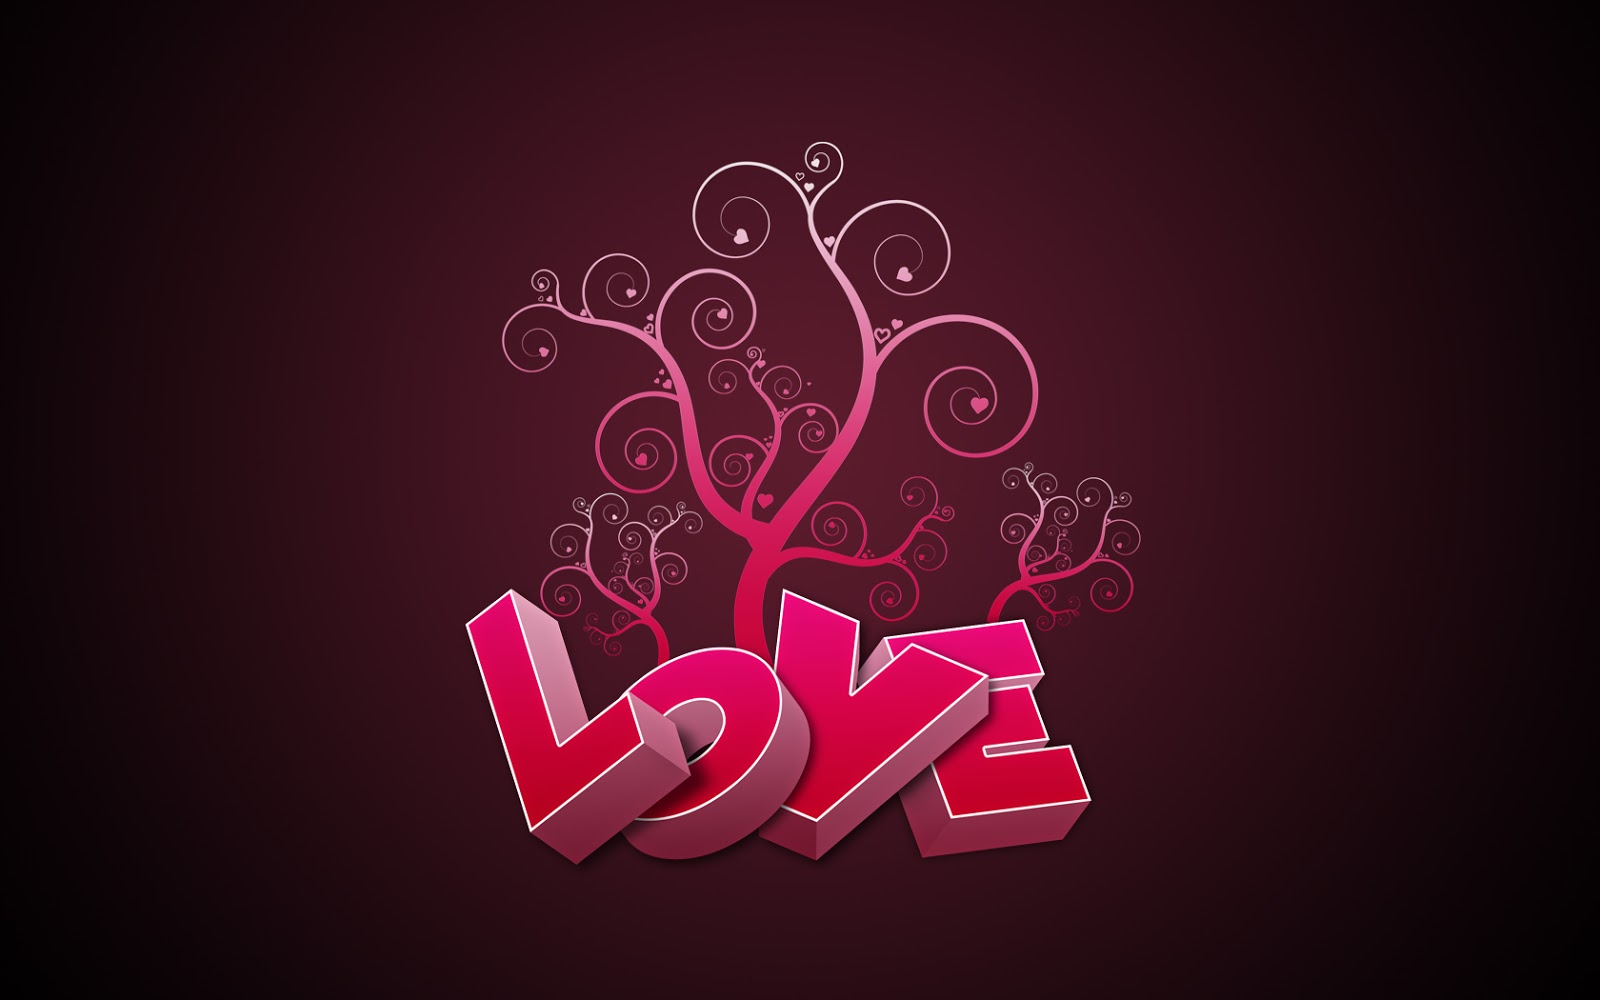 Love Msg Wallpaper In Hd : Sms with Wallpapers: 12/28/13